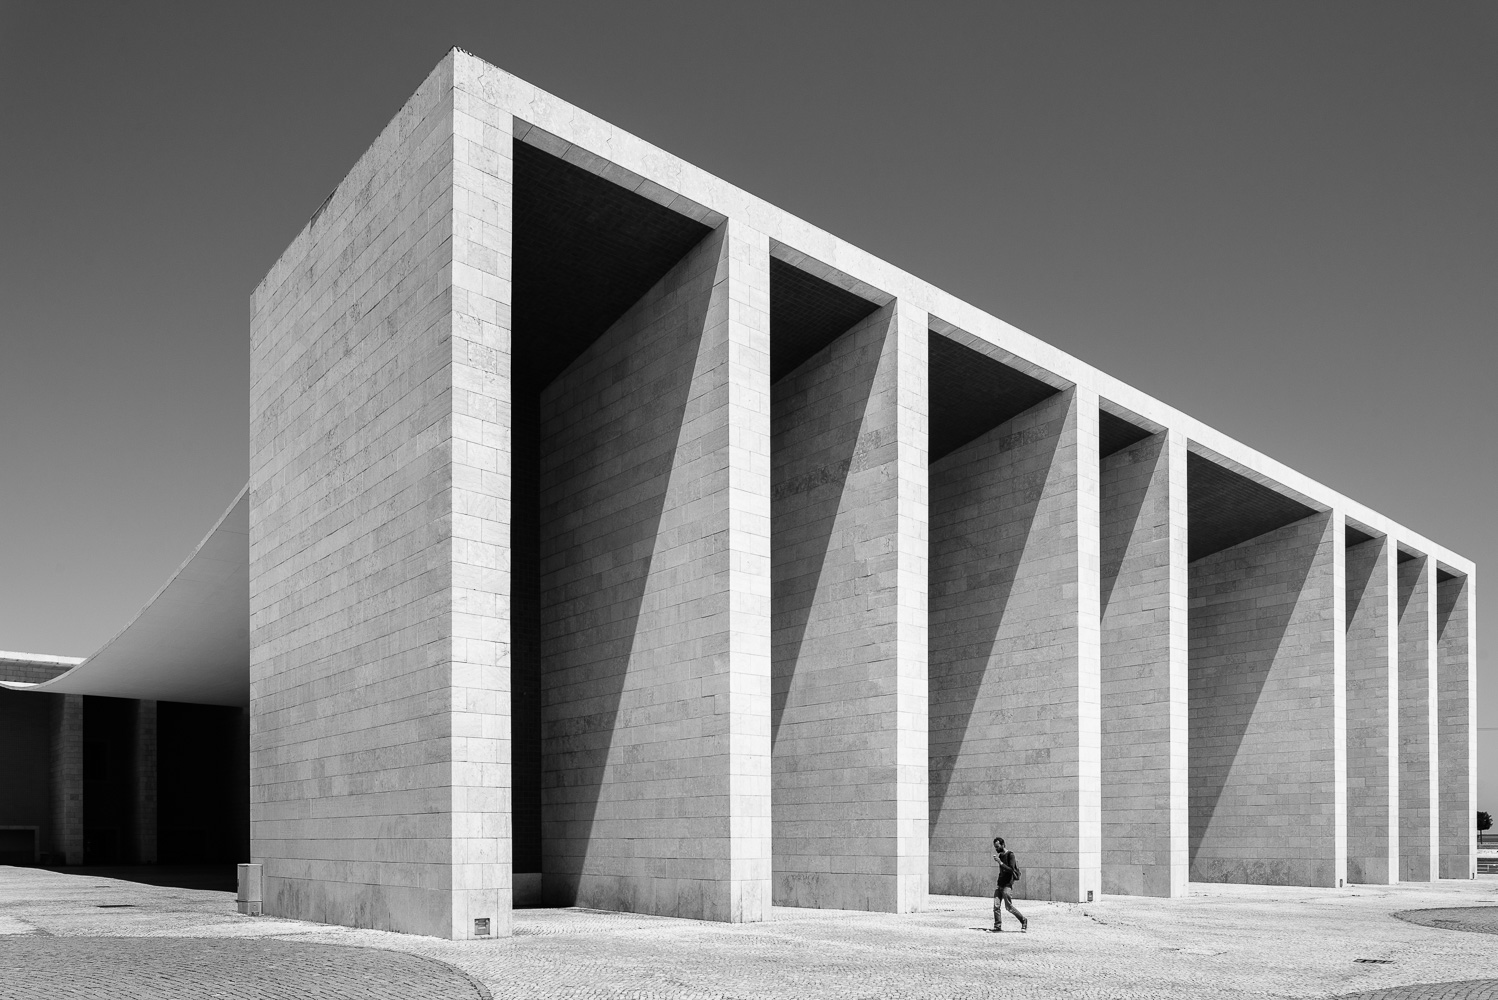 dacian-groza-concrete-black-and-white-architectural-photography-04-0704.jpg